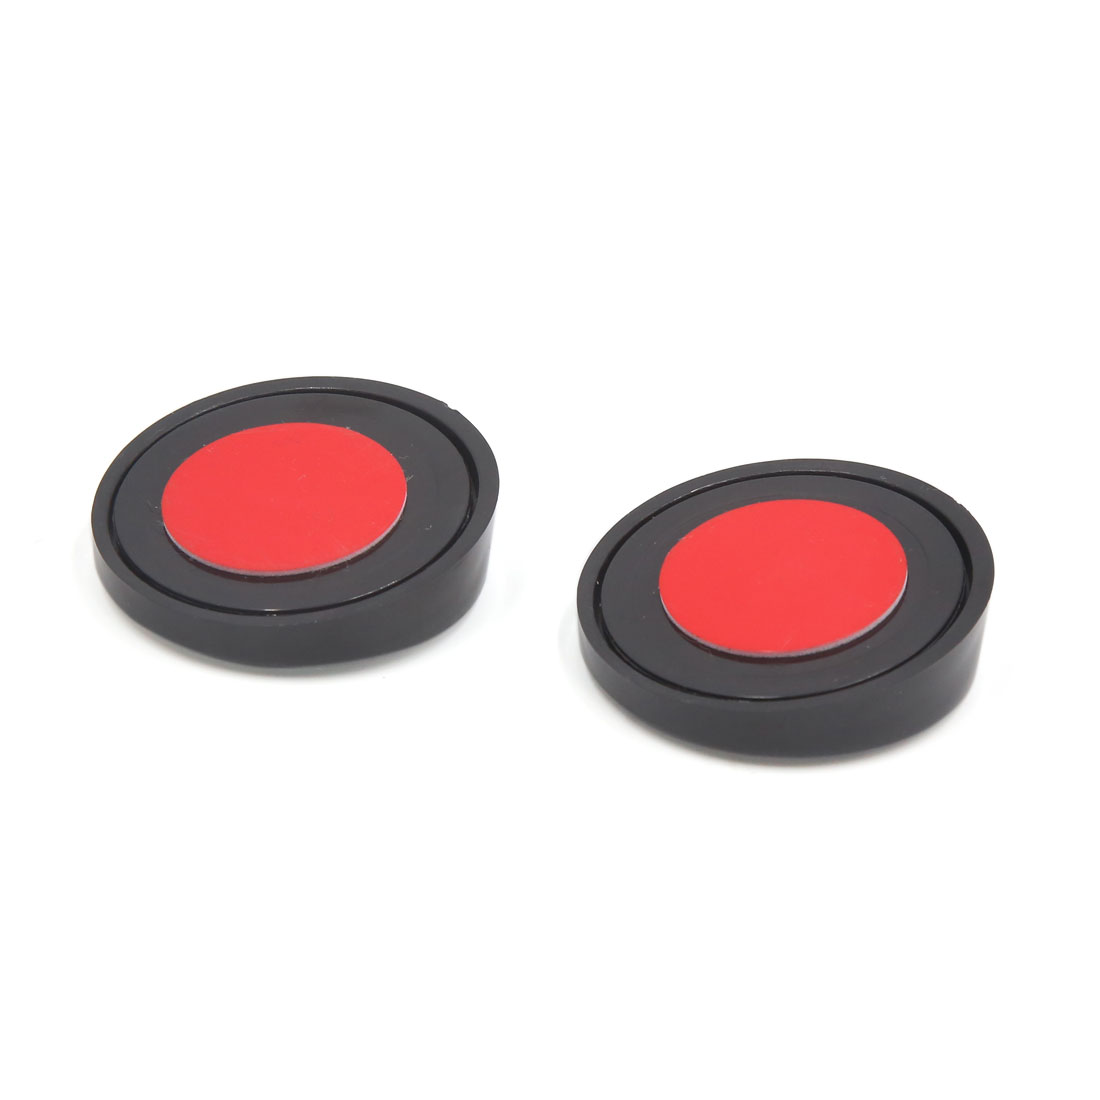 Pair 50mm Black Round Convex Wide Angle Rear View Blind Spot Mirror for Car SUV - image 1 of 2